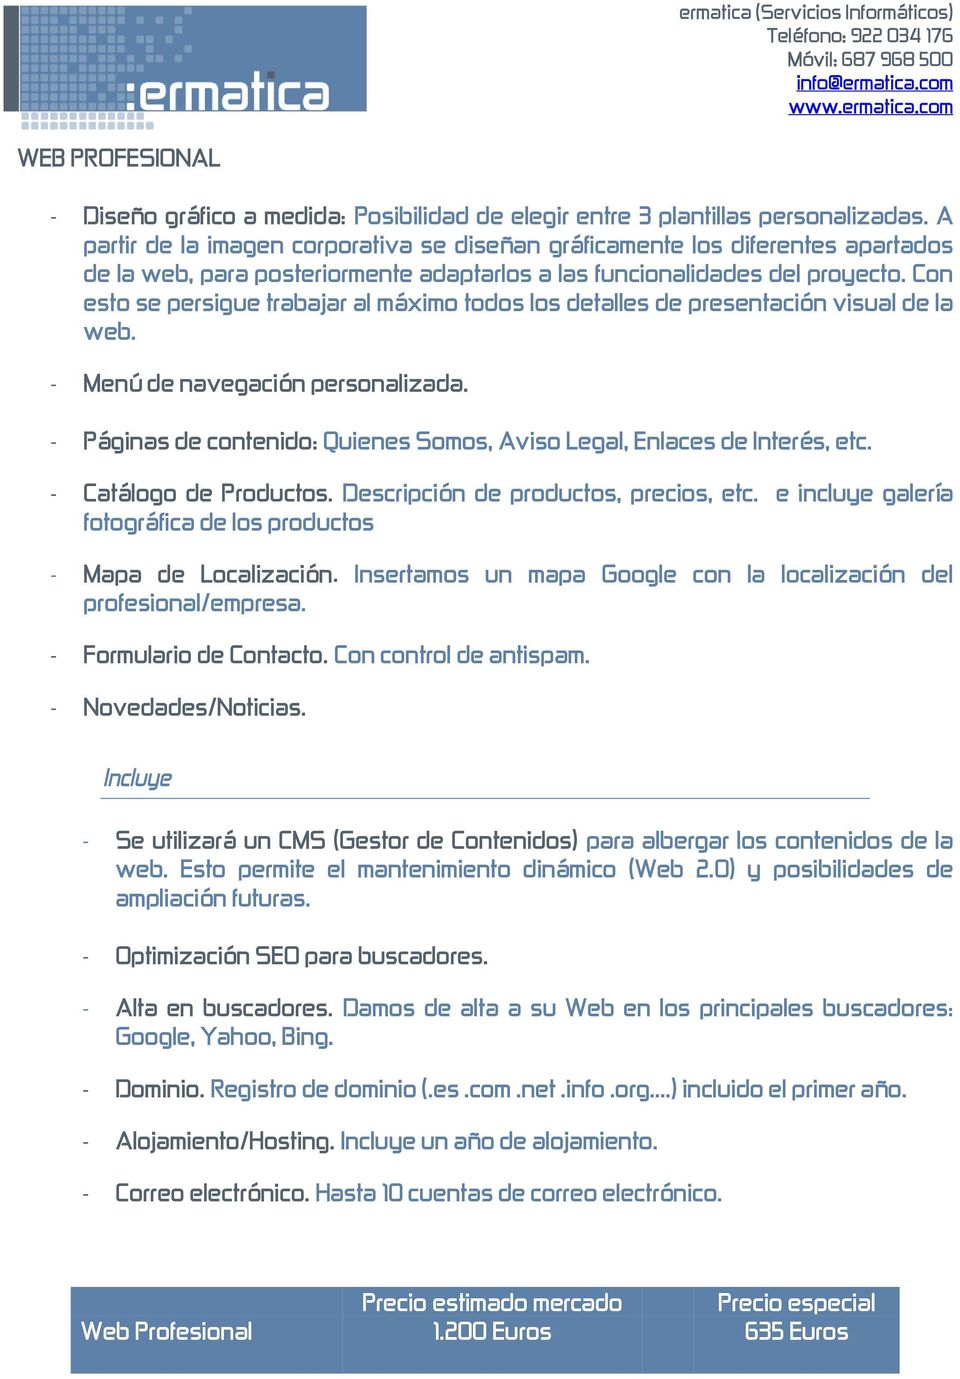 con estosepersiguetrabajaralmáximotodoslosdetallesdepresentaciónvisualdela web. - Menúdenavegaciónpersonalizada. - Páginasdecontenido:QuienesSomos,AvisoLegal,EnlacesdeInterés,etc.